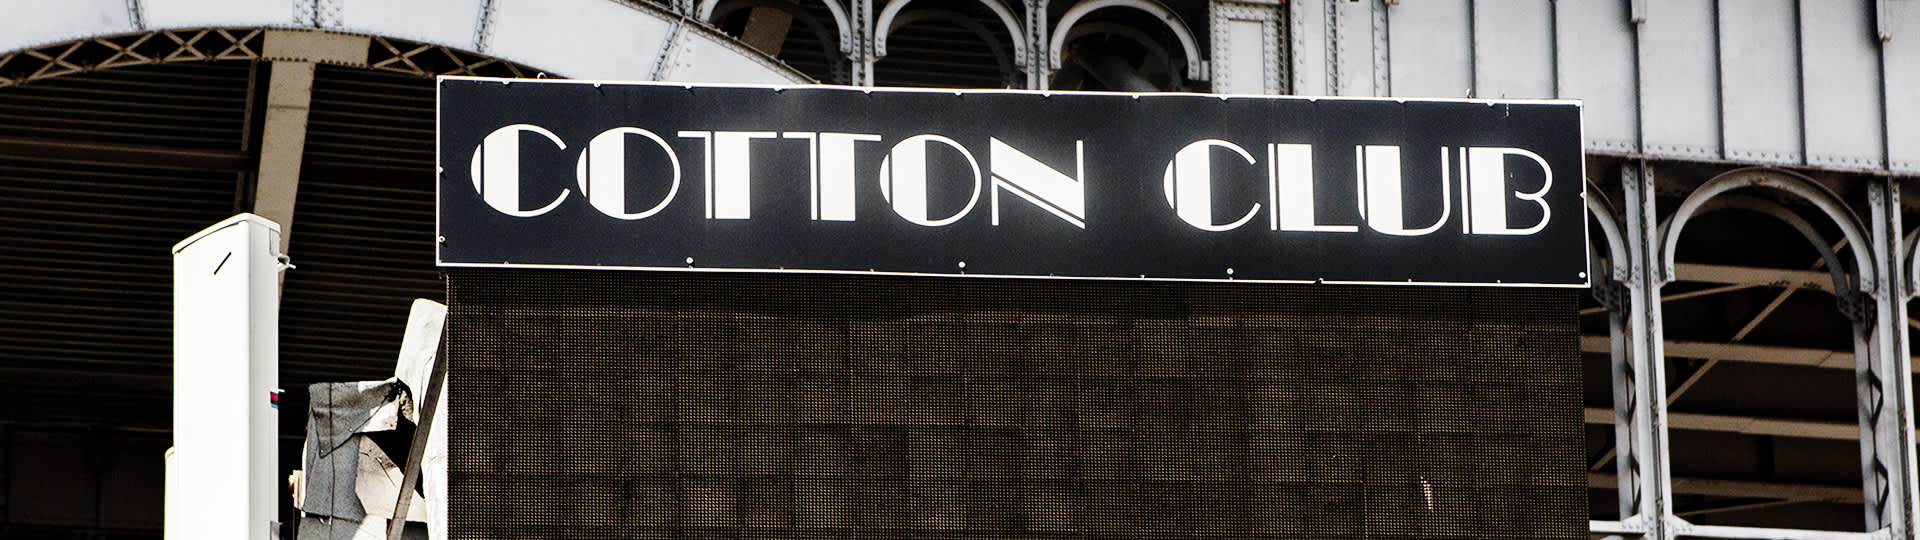 Cotton Club, Harlem